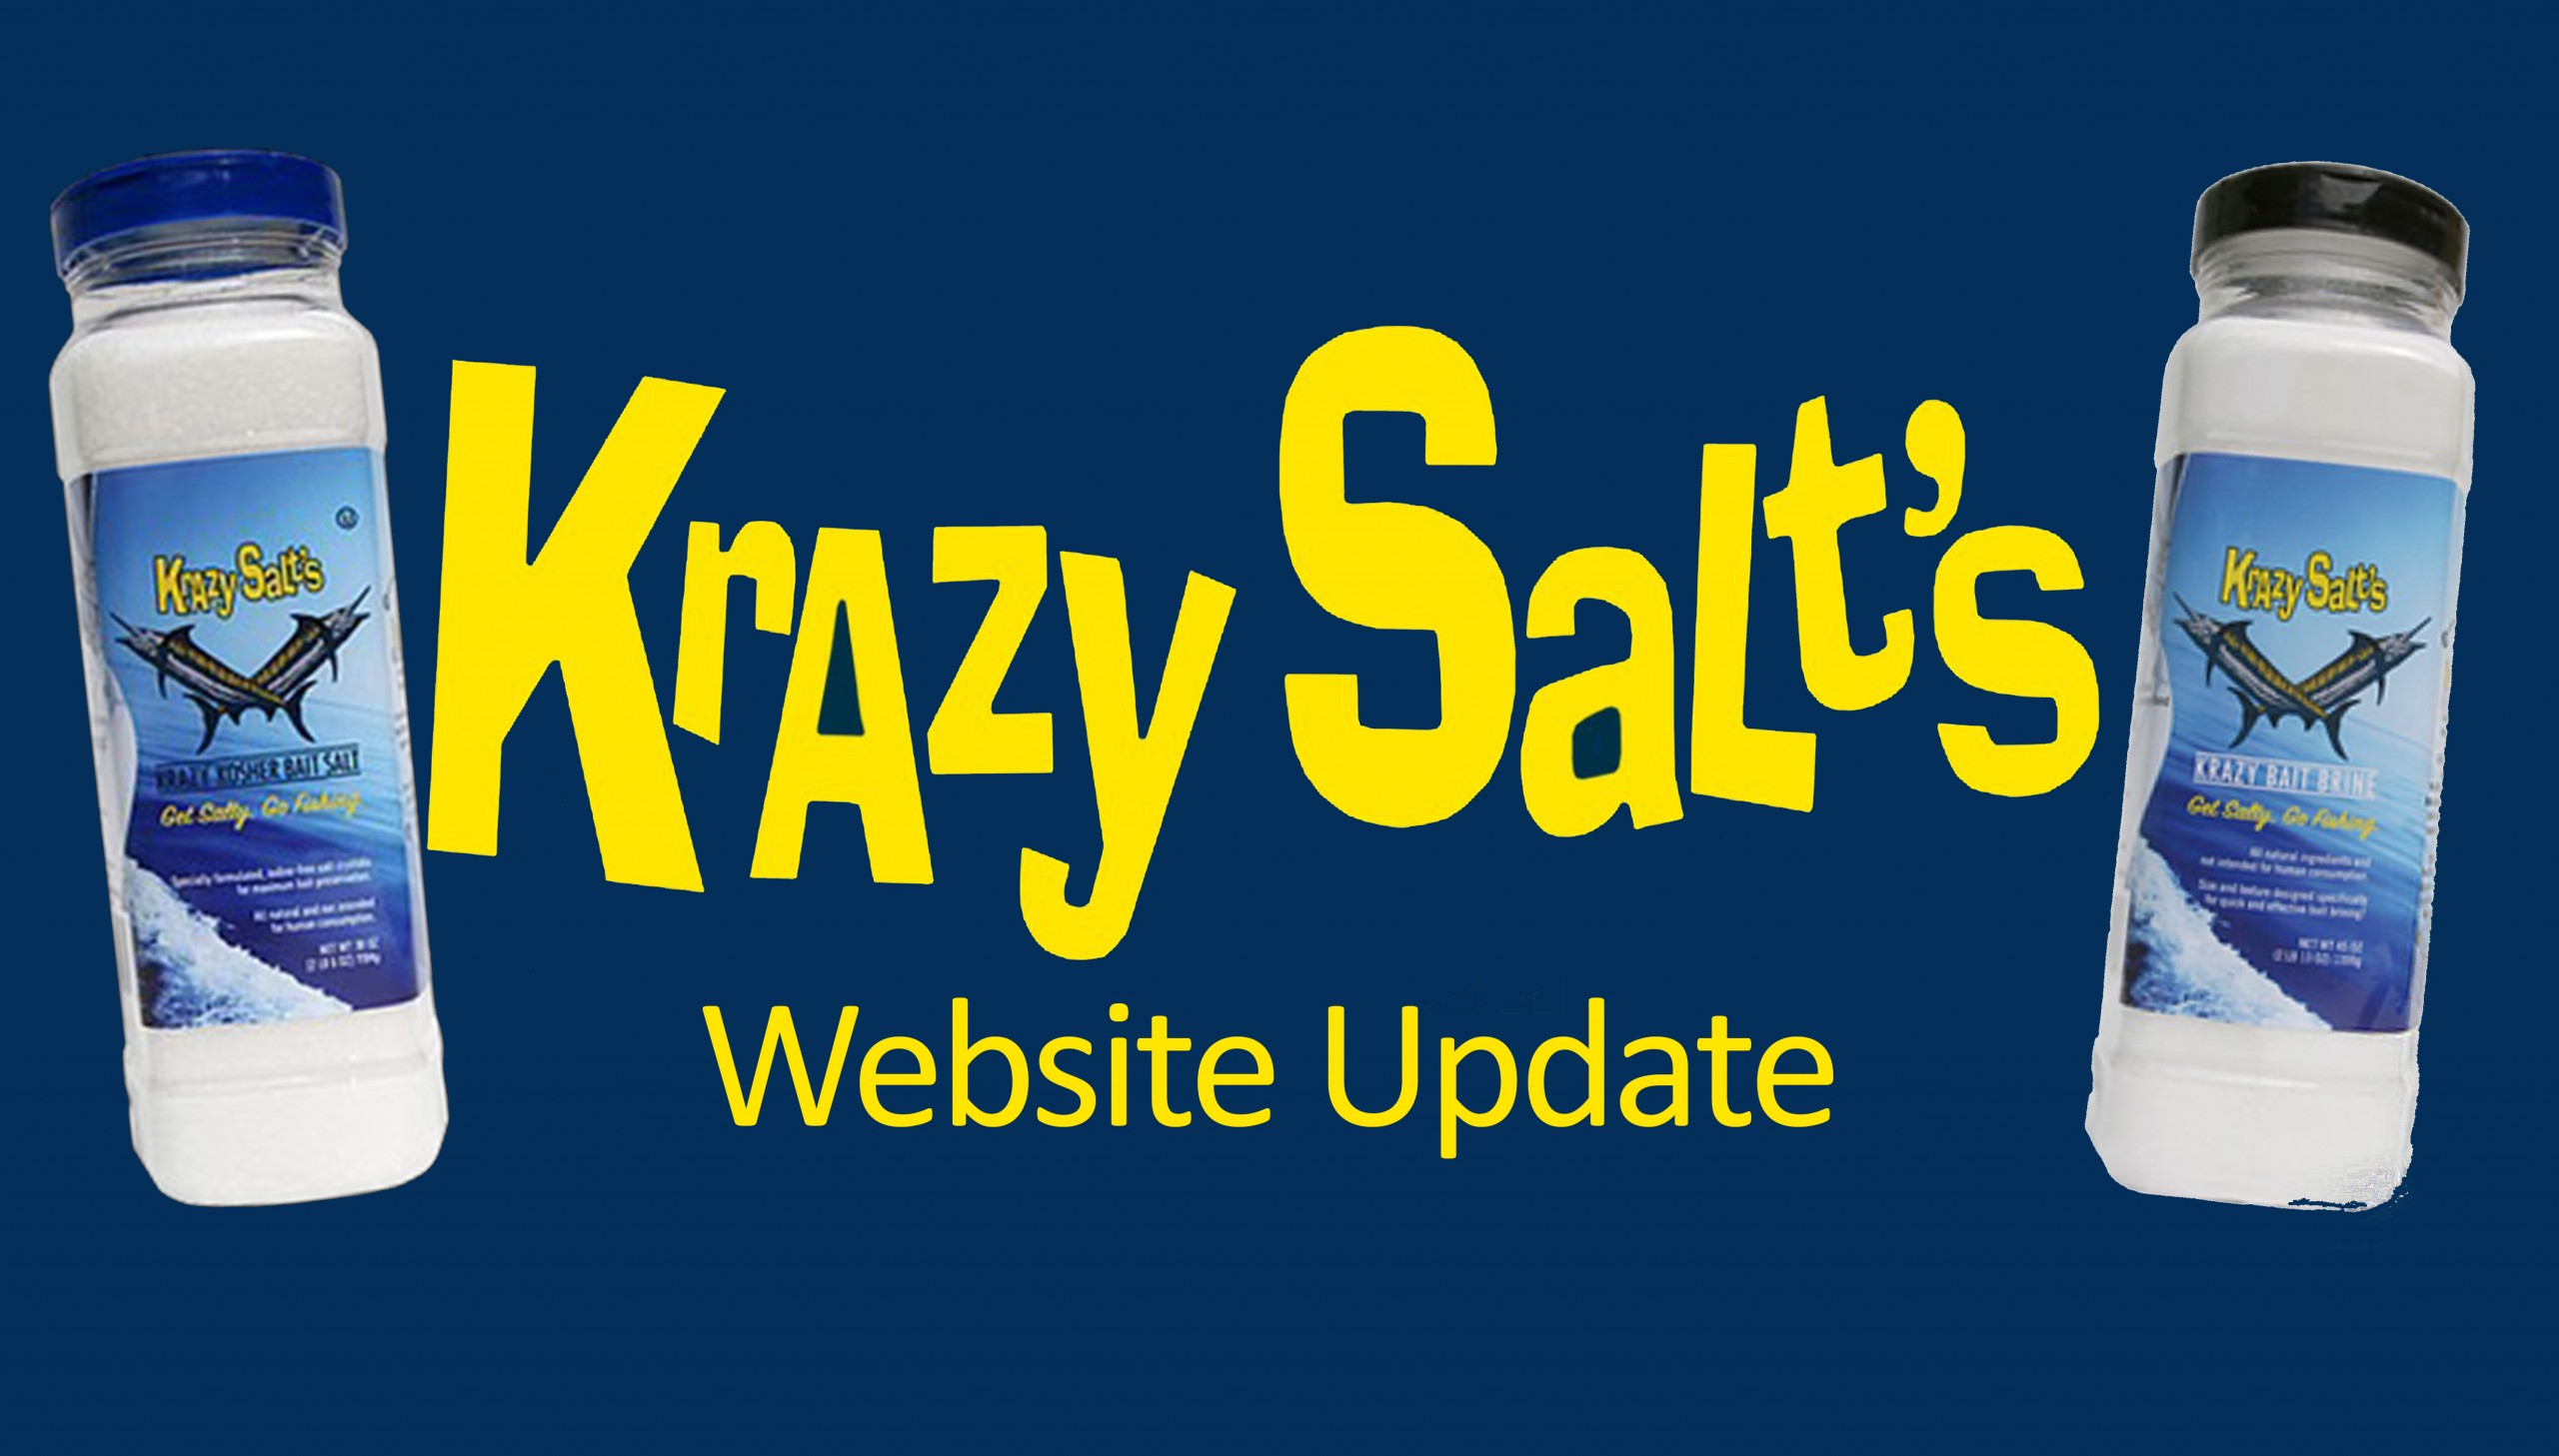 Krazy Salt's Website Update